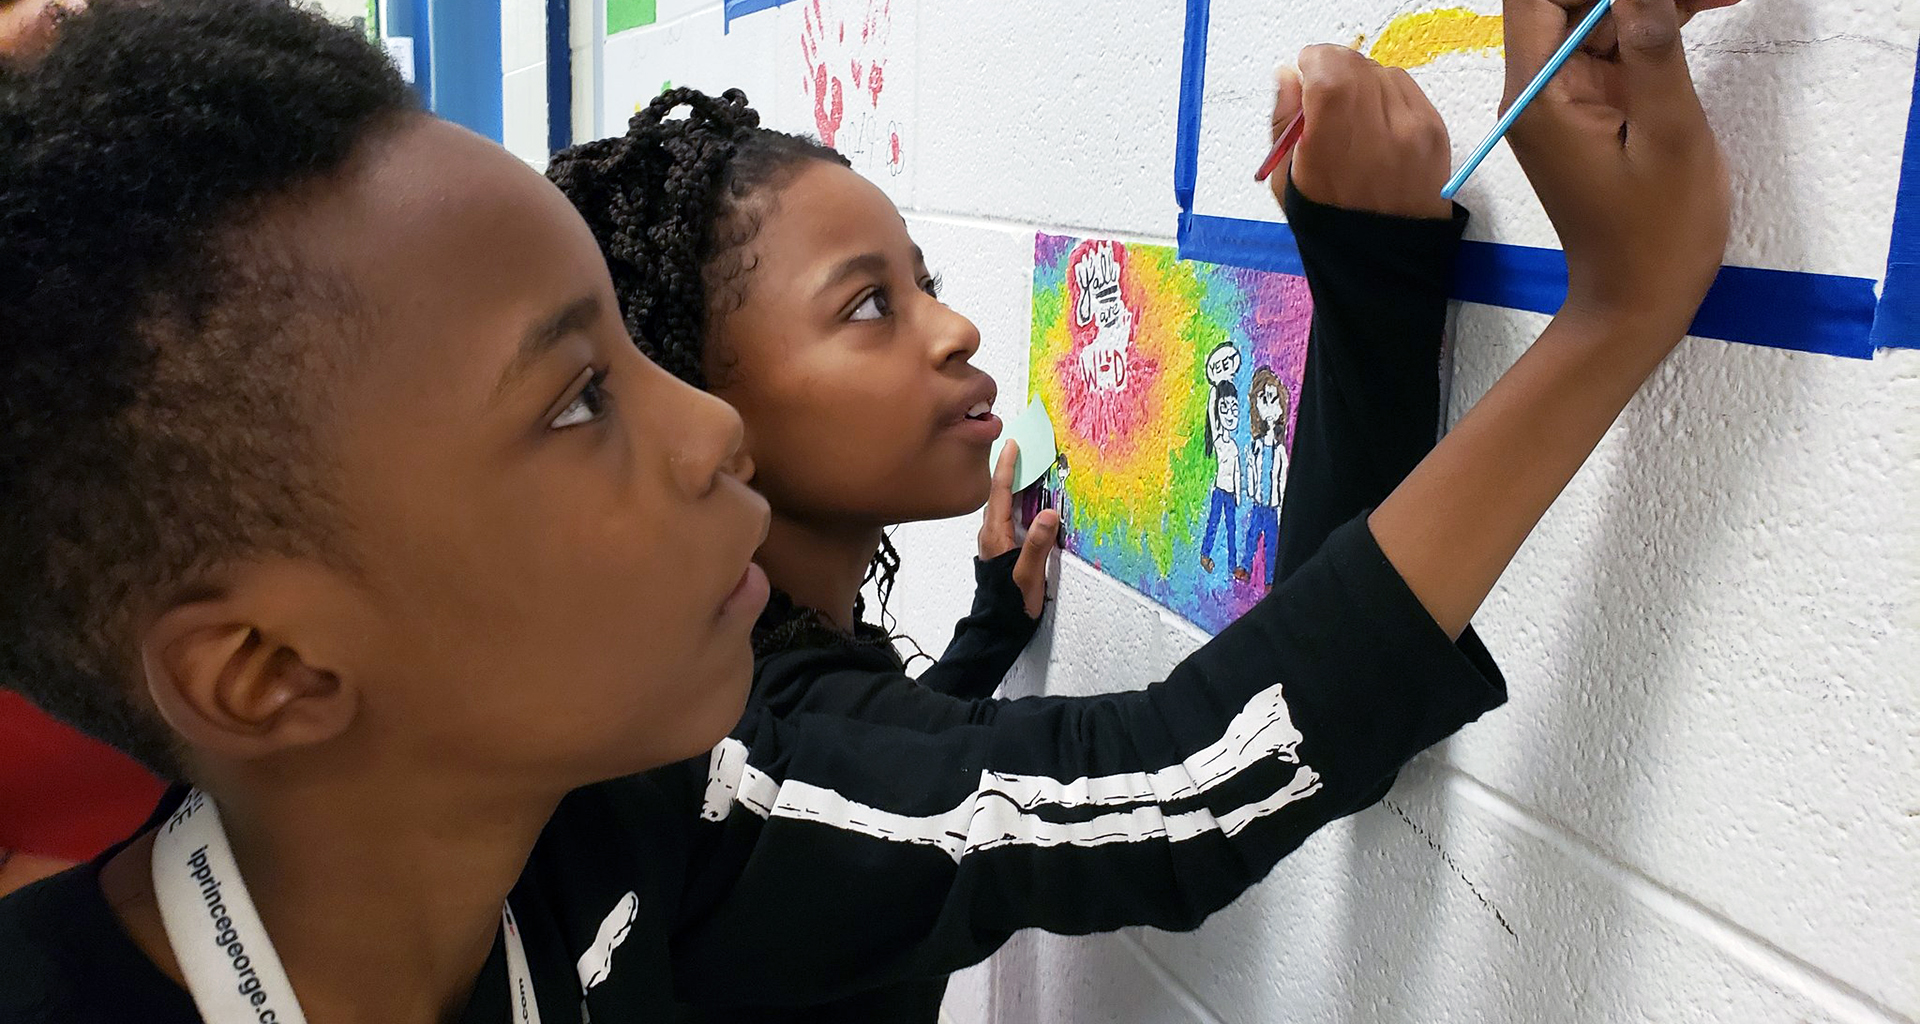 Two students painting a block on the hallway wall.